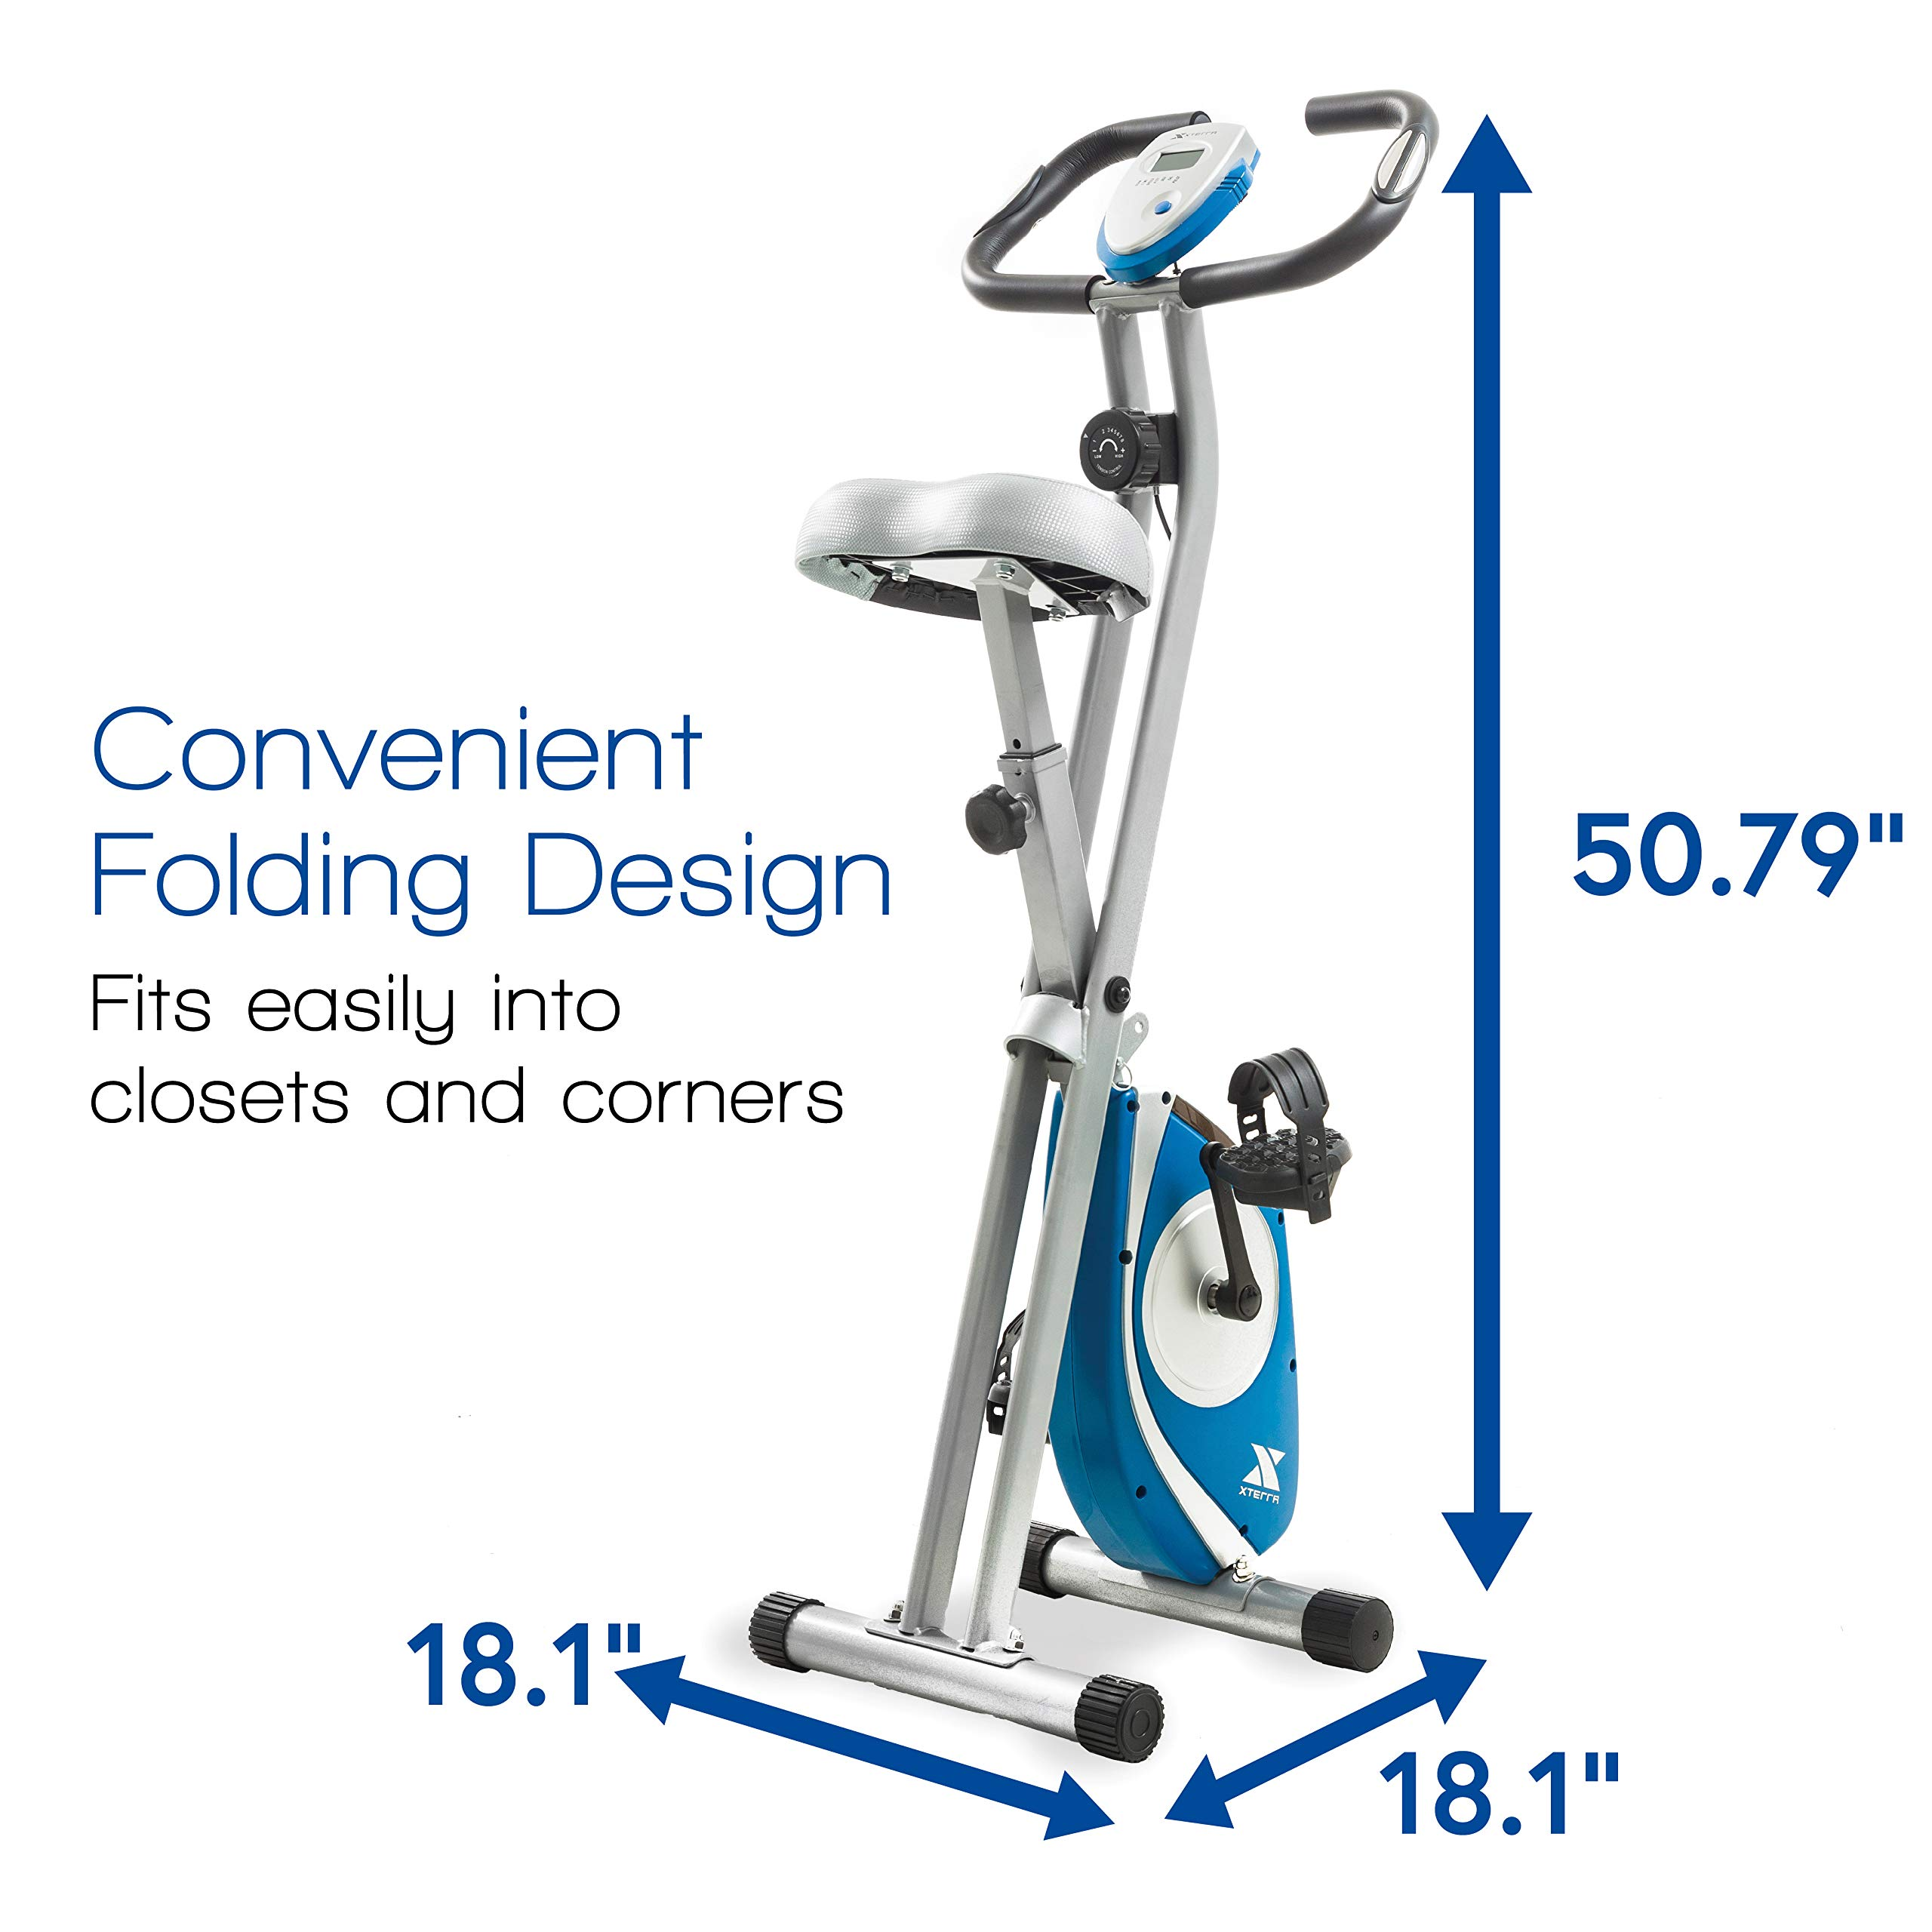 XTERRA Fitness FB150 Folding Exercise Bike, Silver by XTERRA Fitness (Image #4)